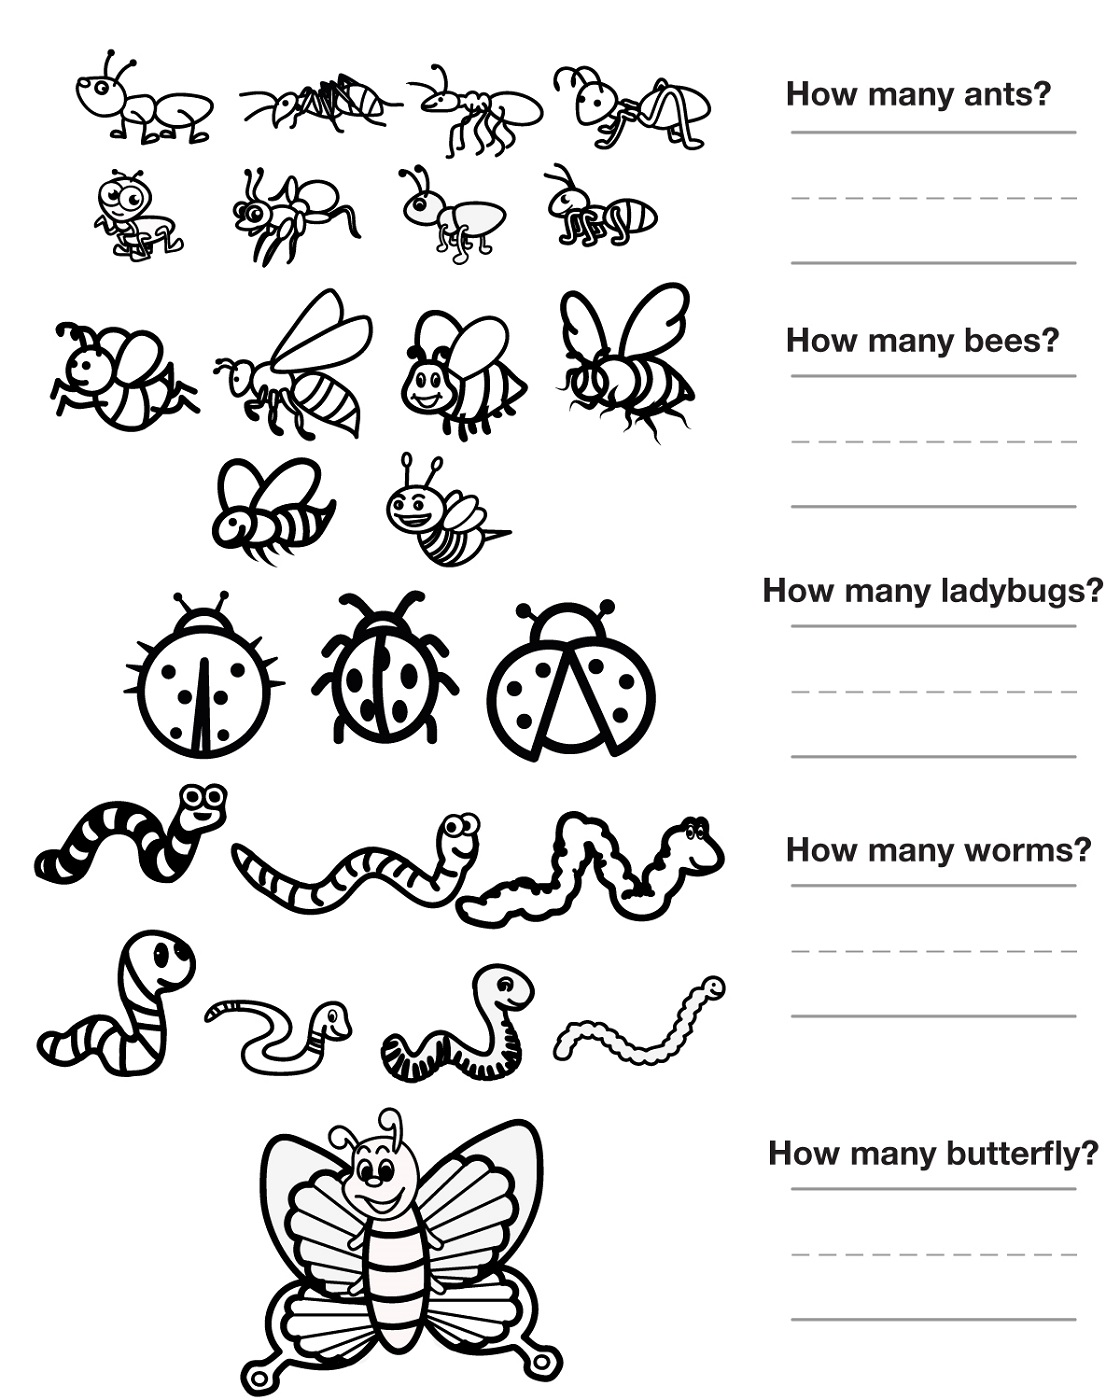 kids activity sheets images